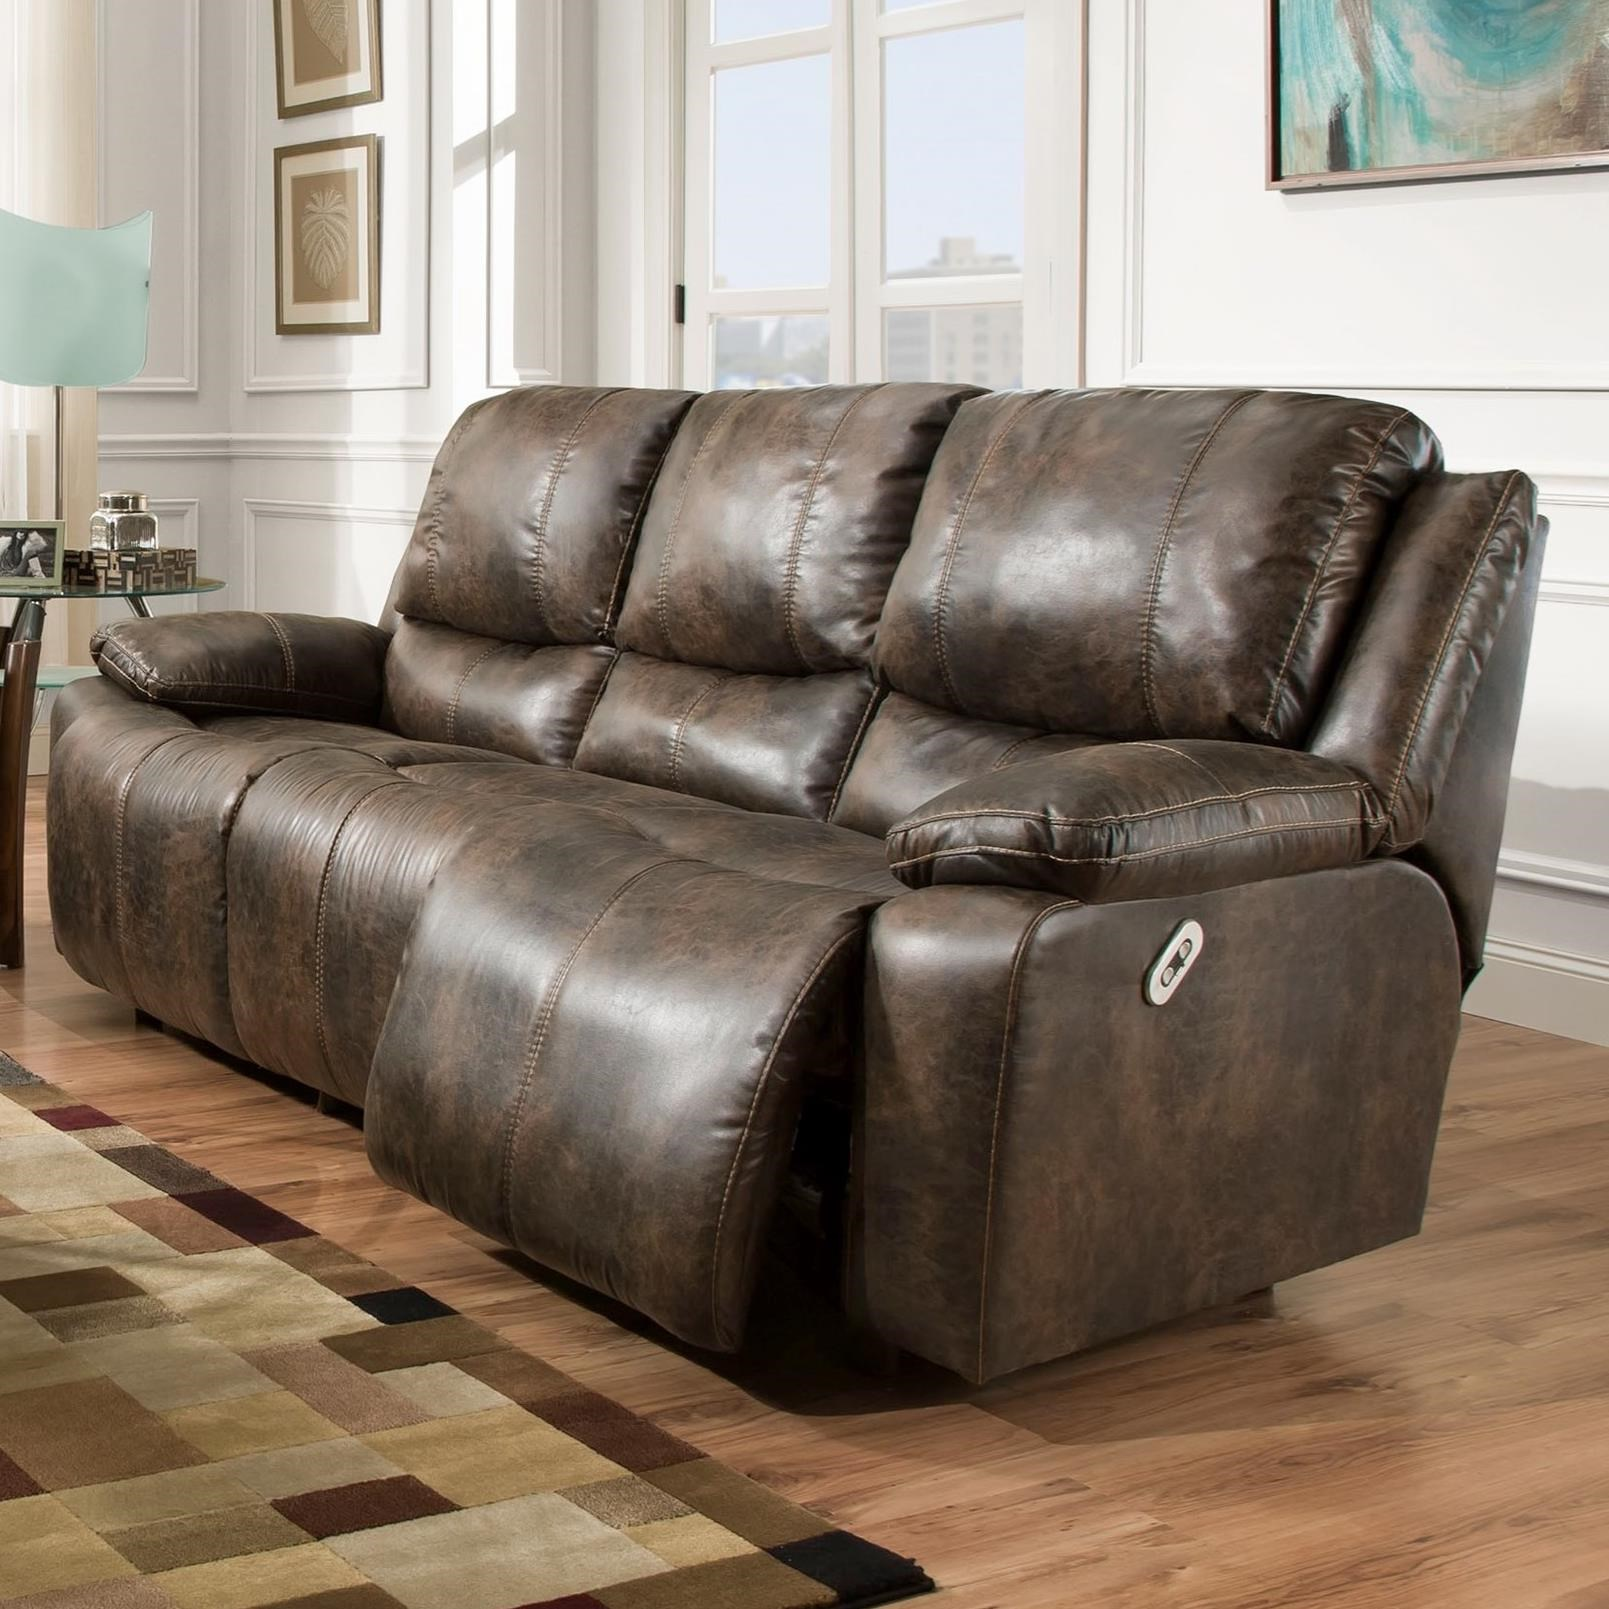 Franklin Montana Power Reclining Sofa With Power Backrest Miskelly Furniture Reclining Sofas